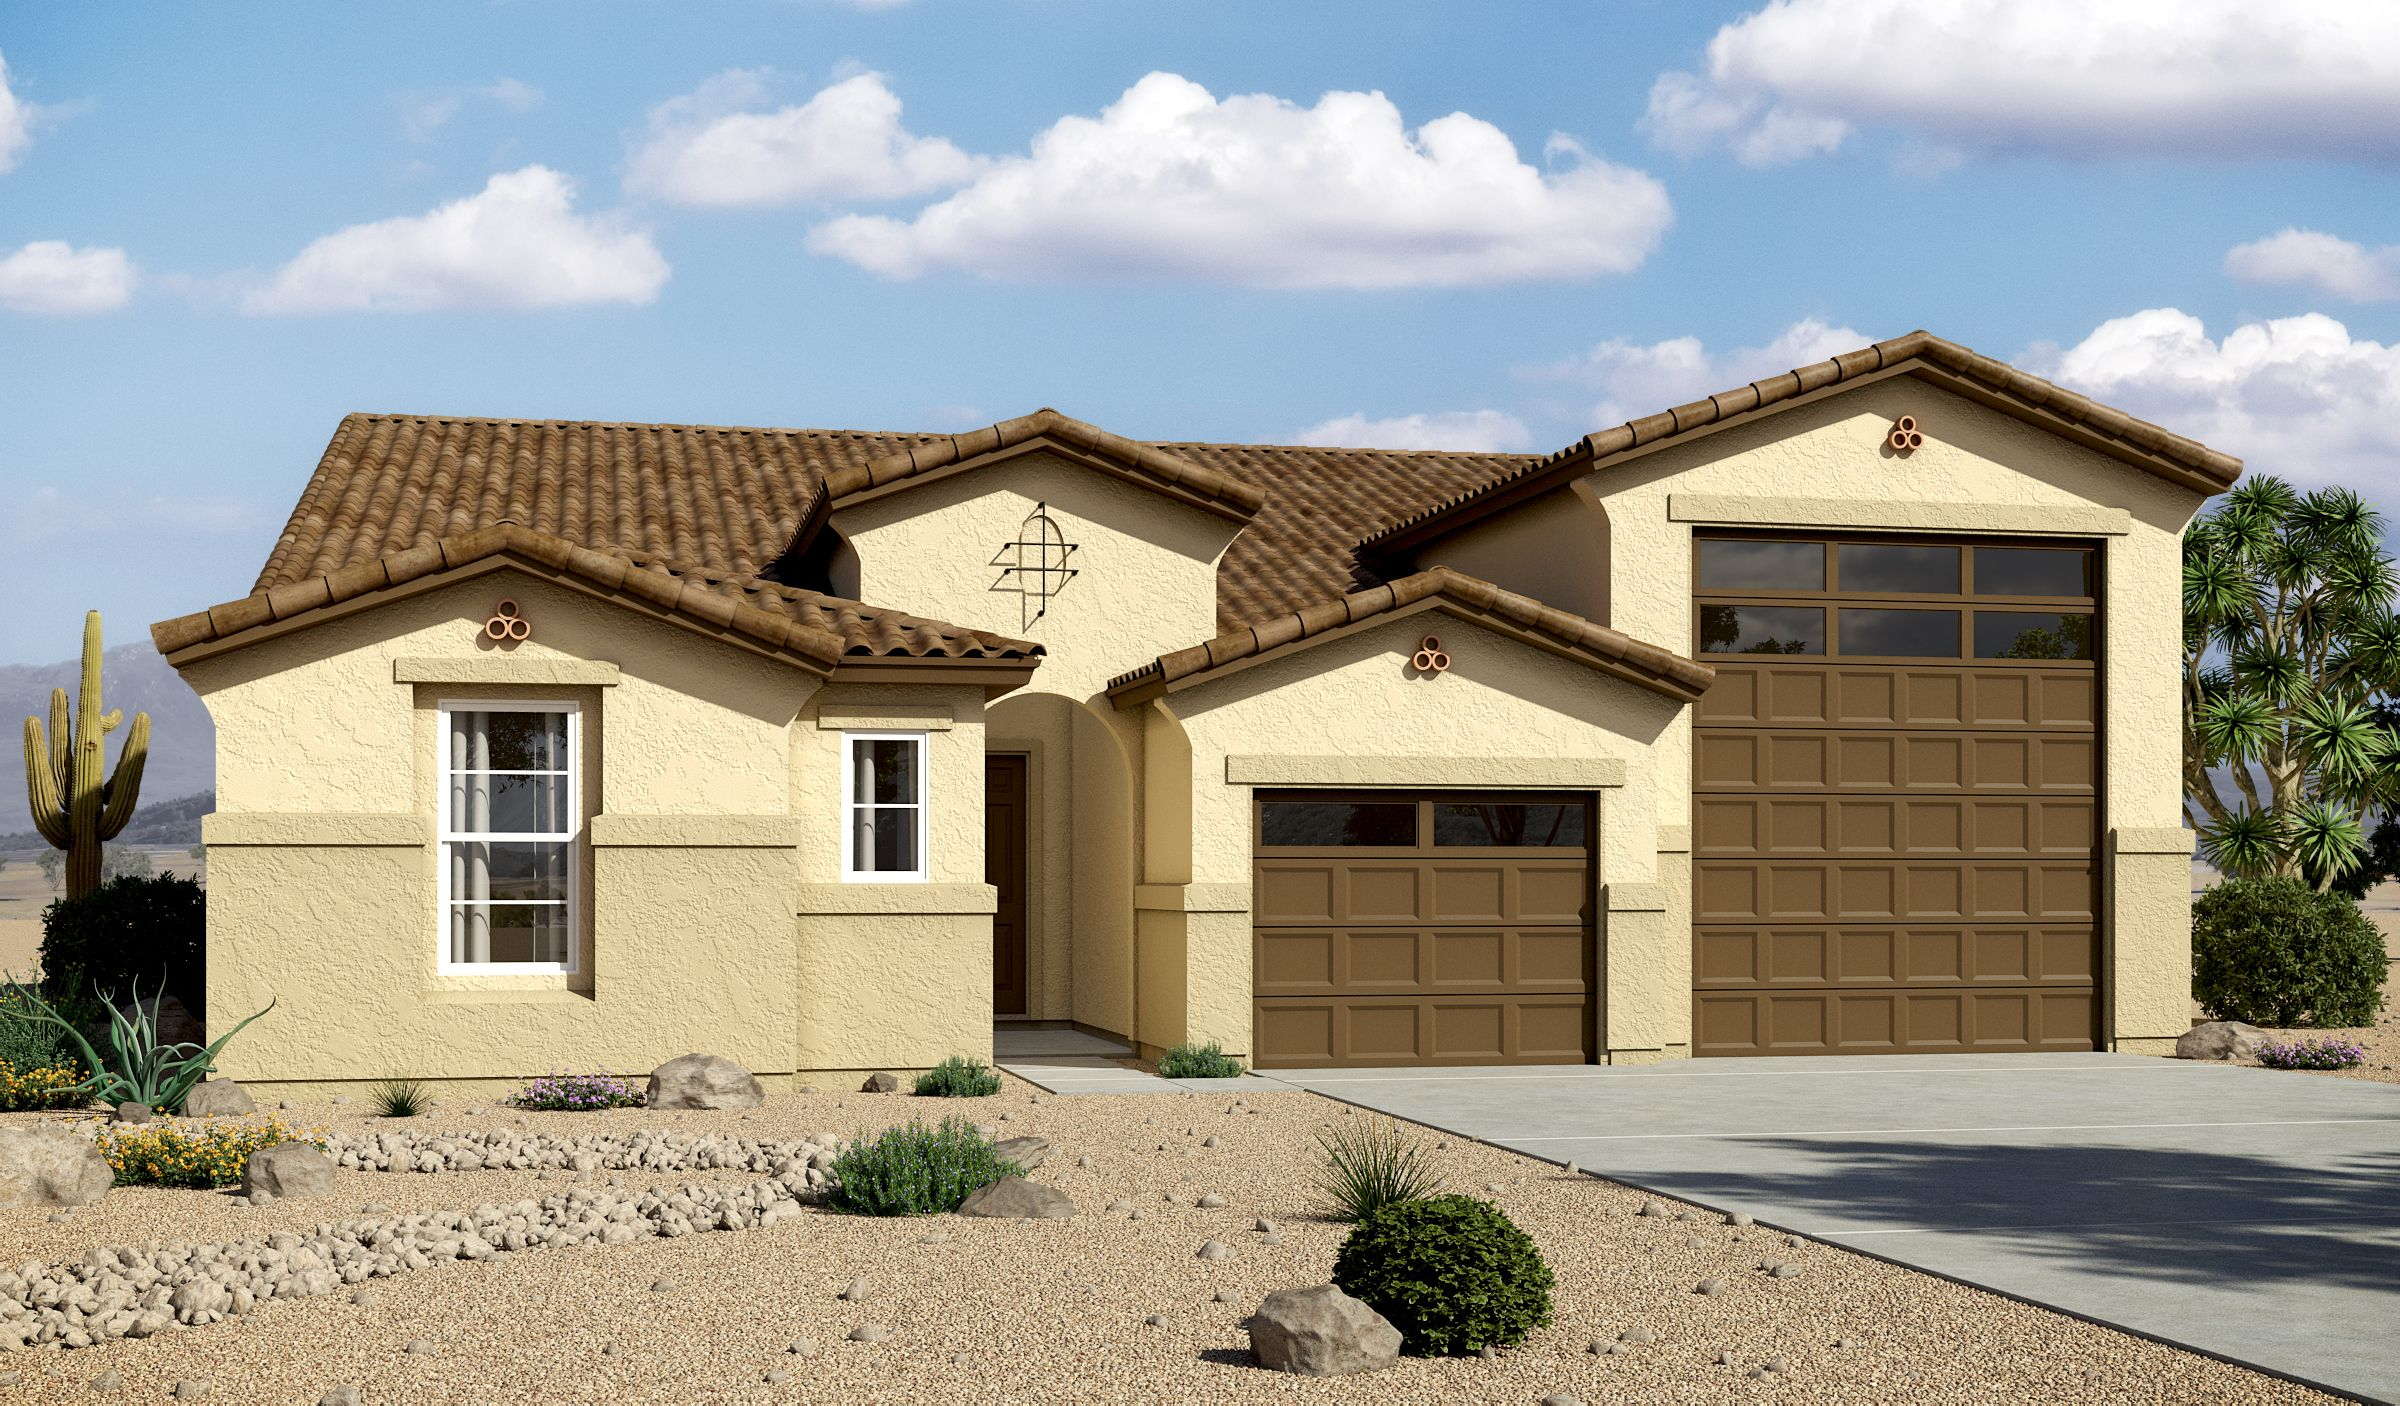 Homebuilder designs in phoenix az movenewhomes for Modern home builders phoenix